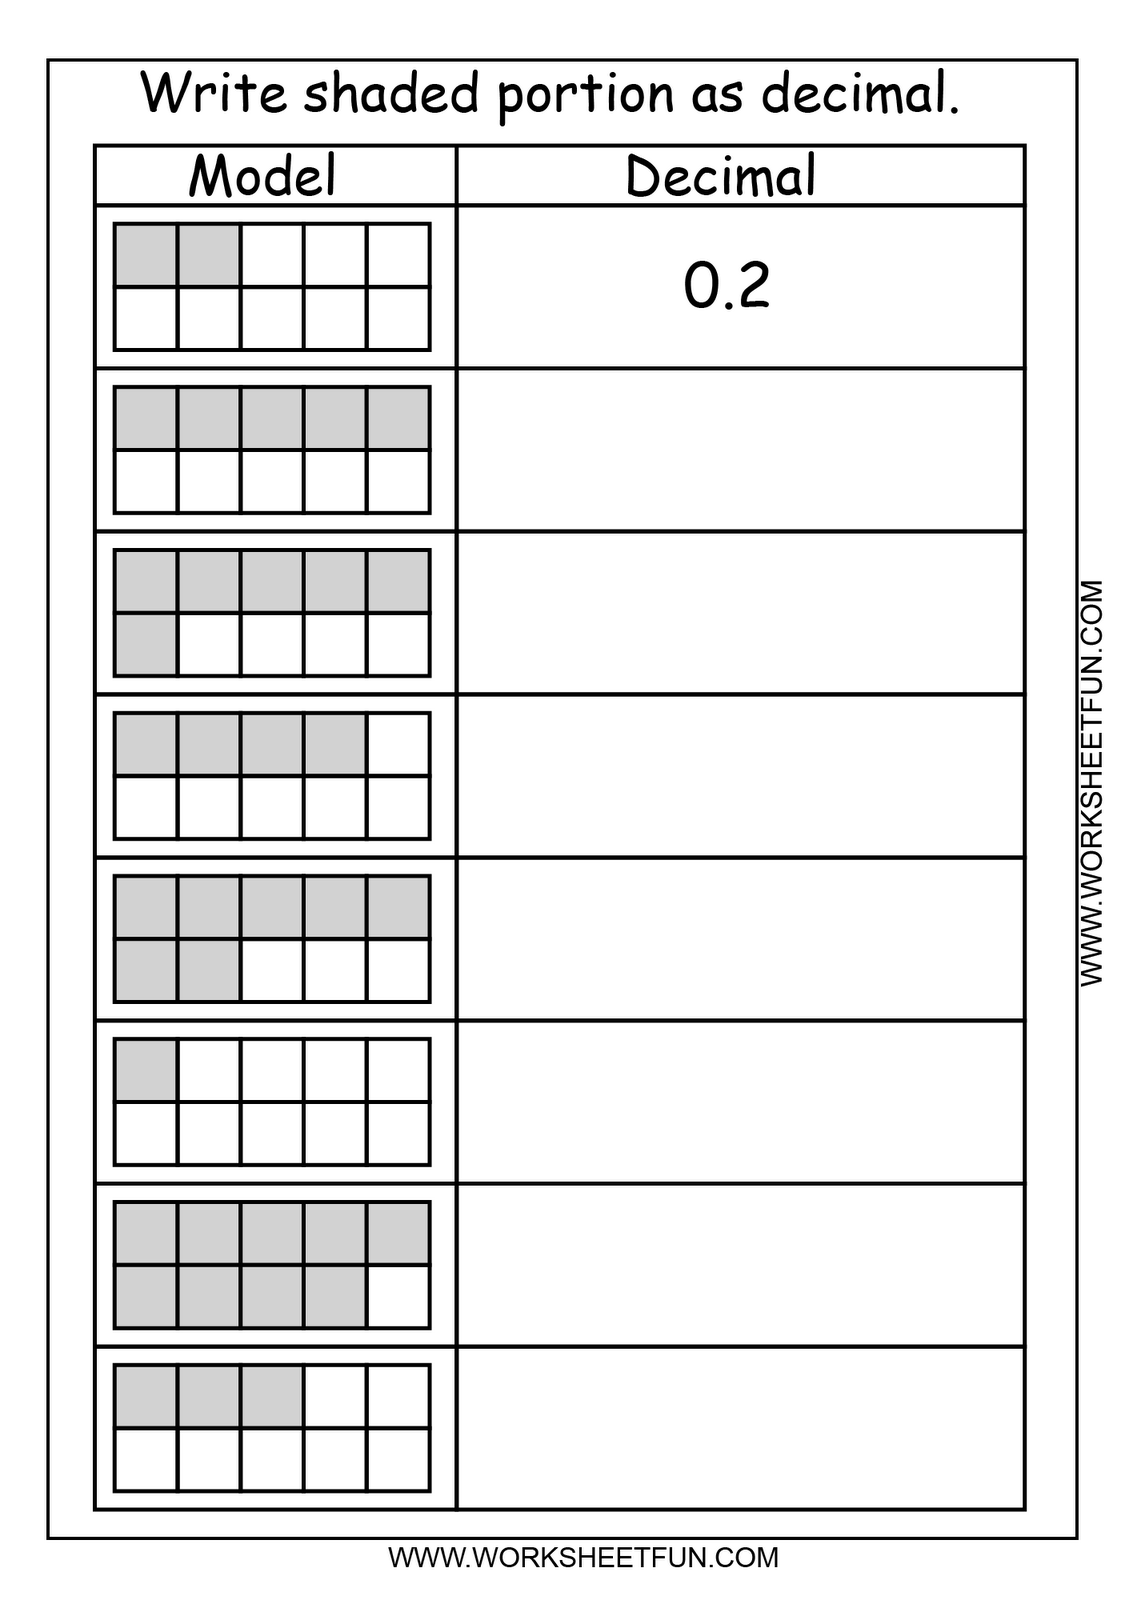 small resolution of Worksheetfun - FREE PRINTABLE WORKSHEETS   Fractions worksheets